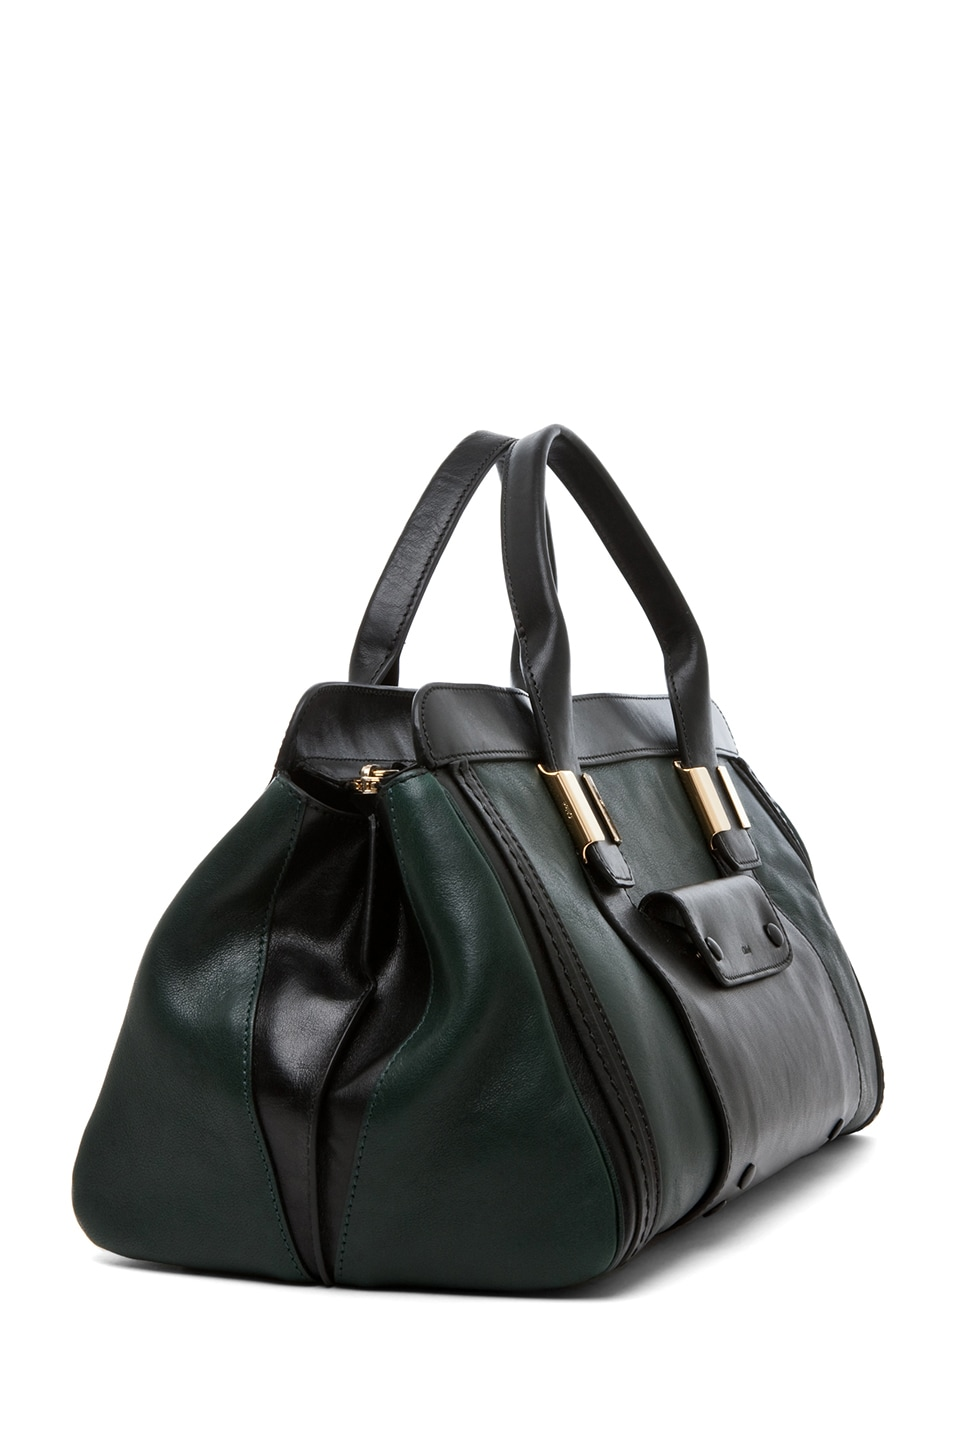 Image 3 of Chloe Alice Springs Medium Handbag in Fir Green